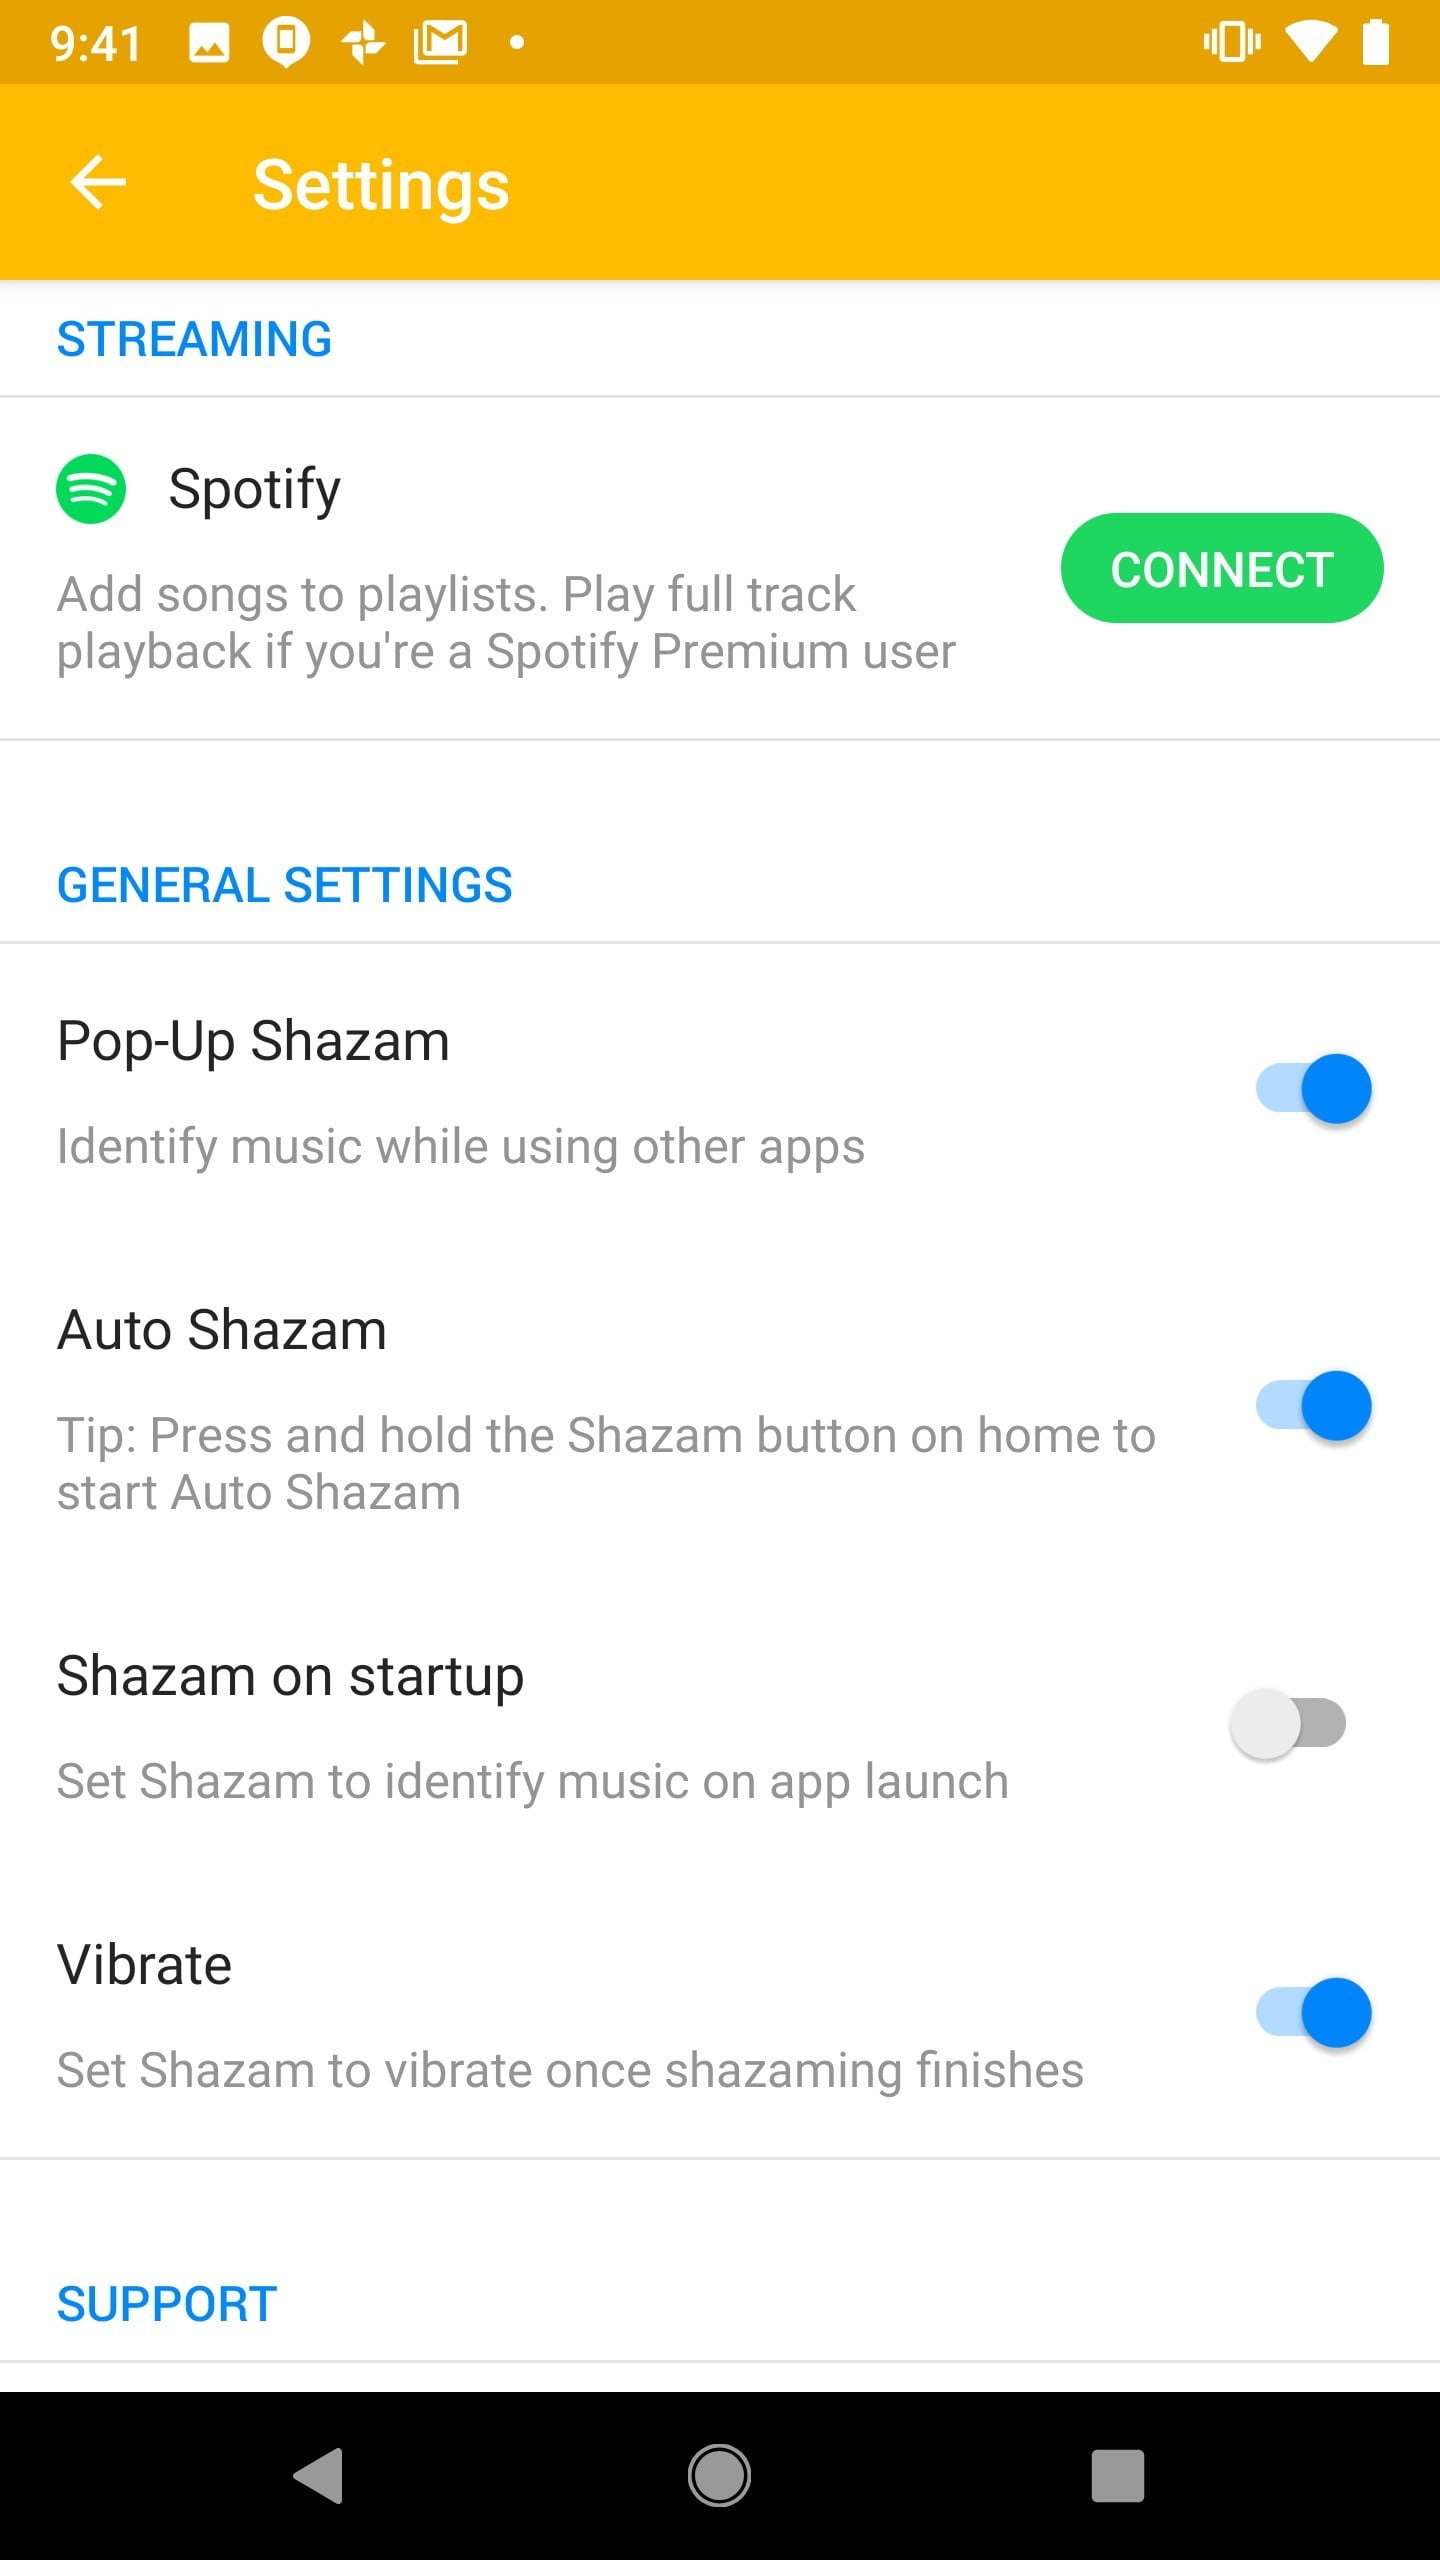 Shazam on Android Doesn't Need to Hear Songs to Identify